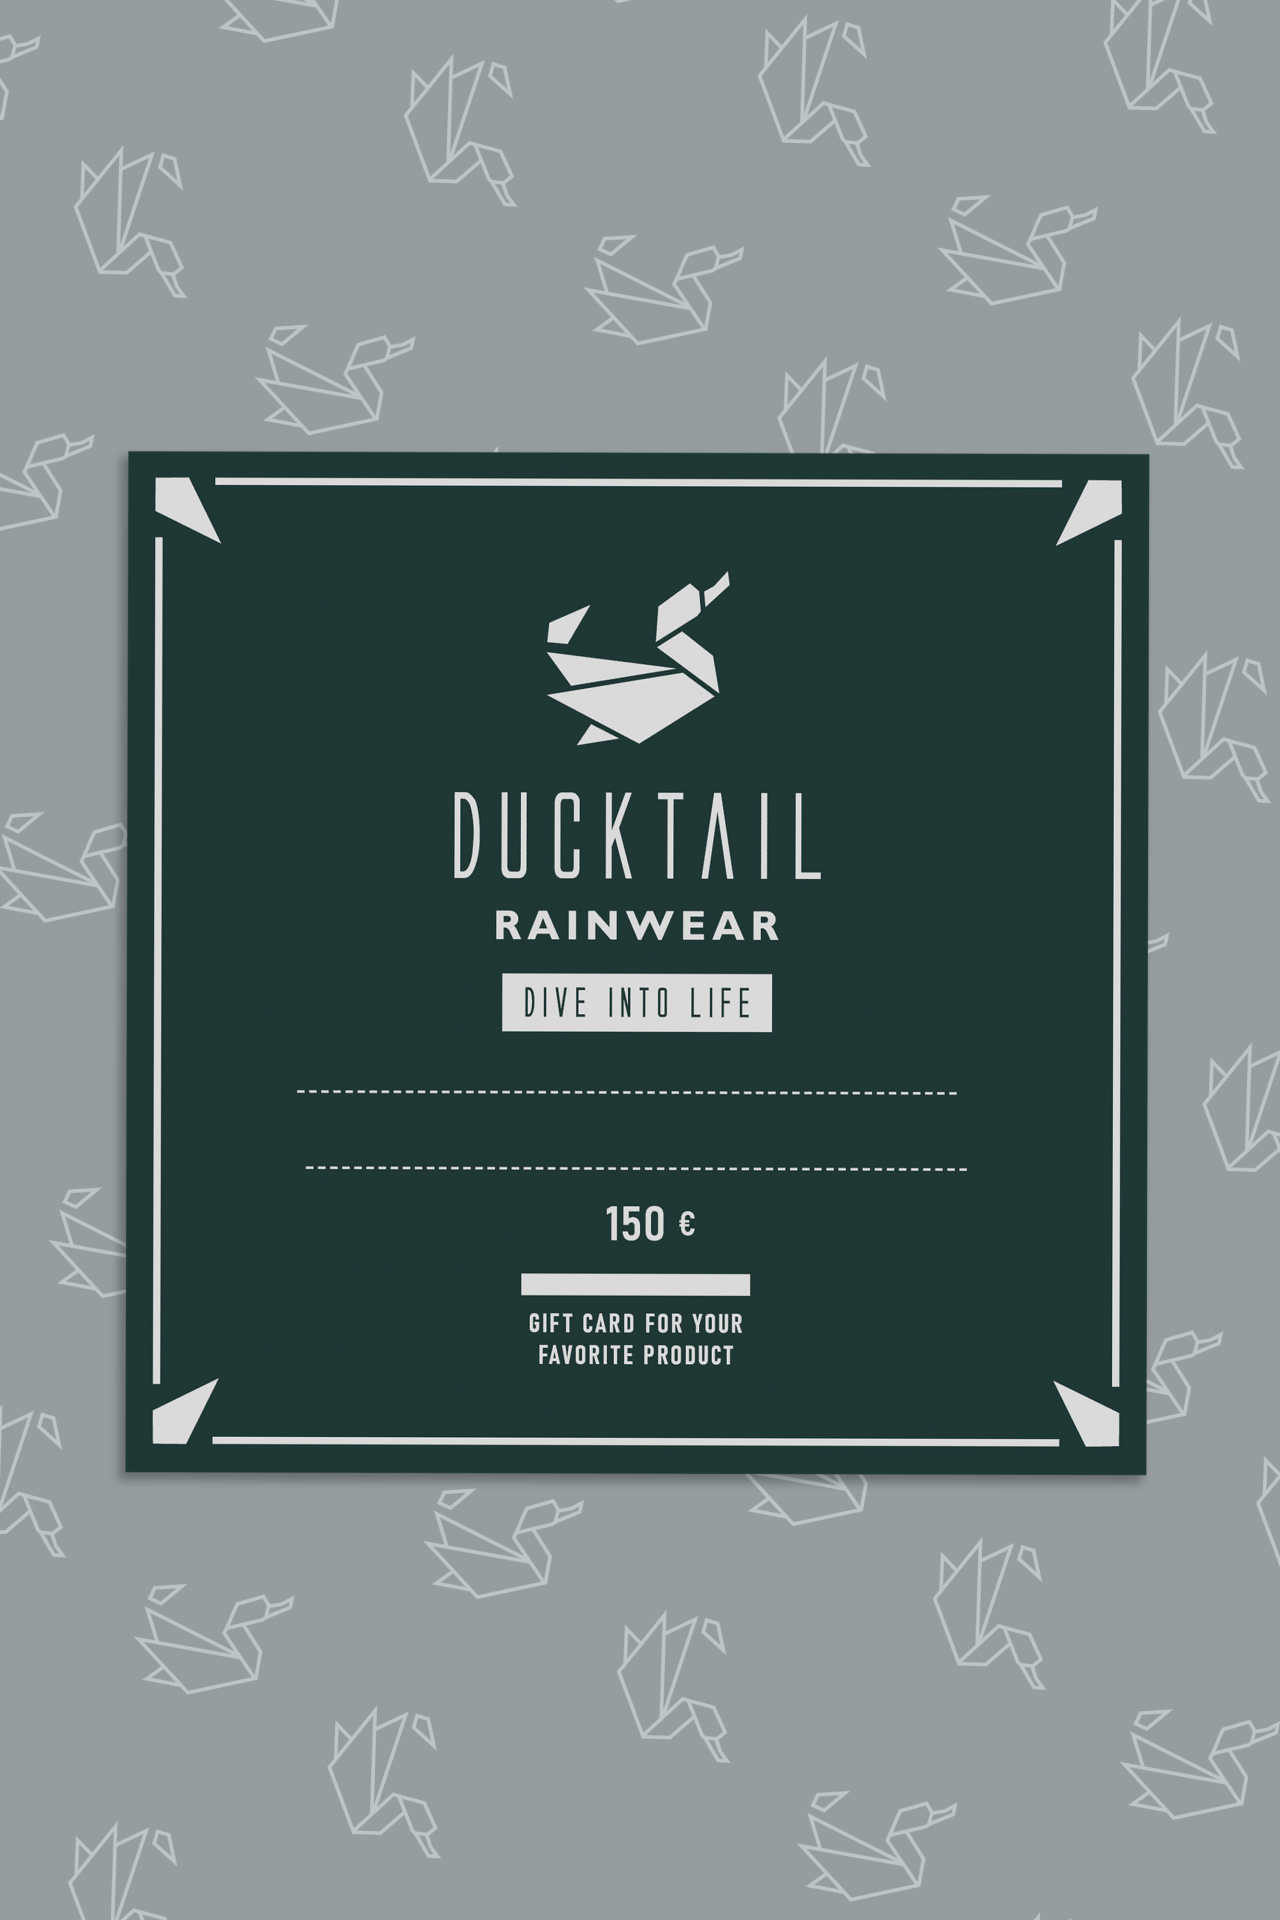 Ducktail gift card